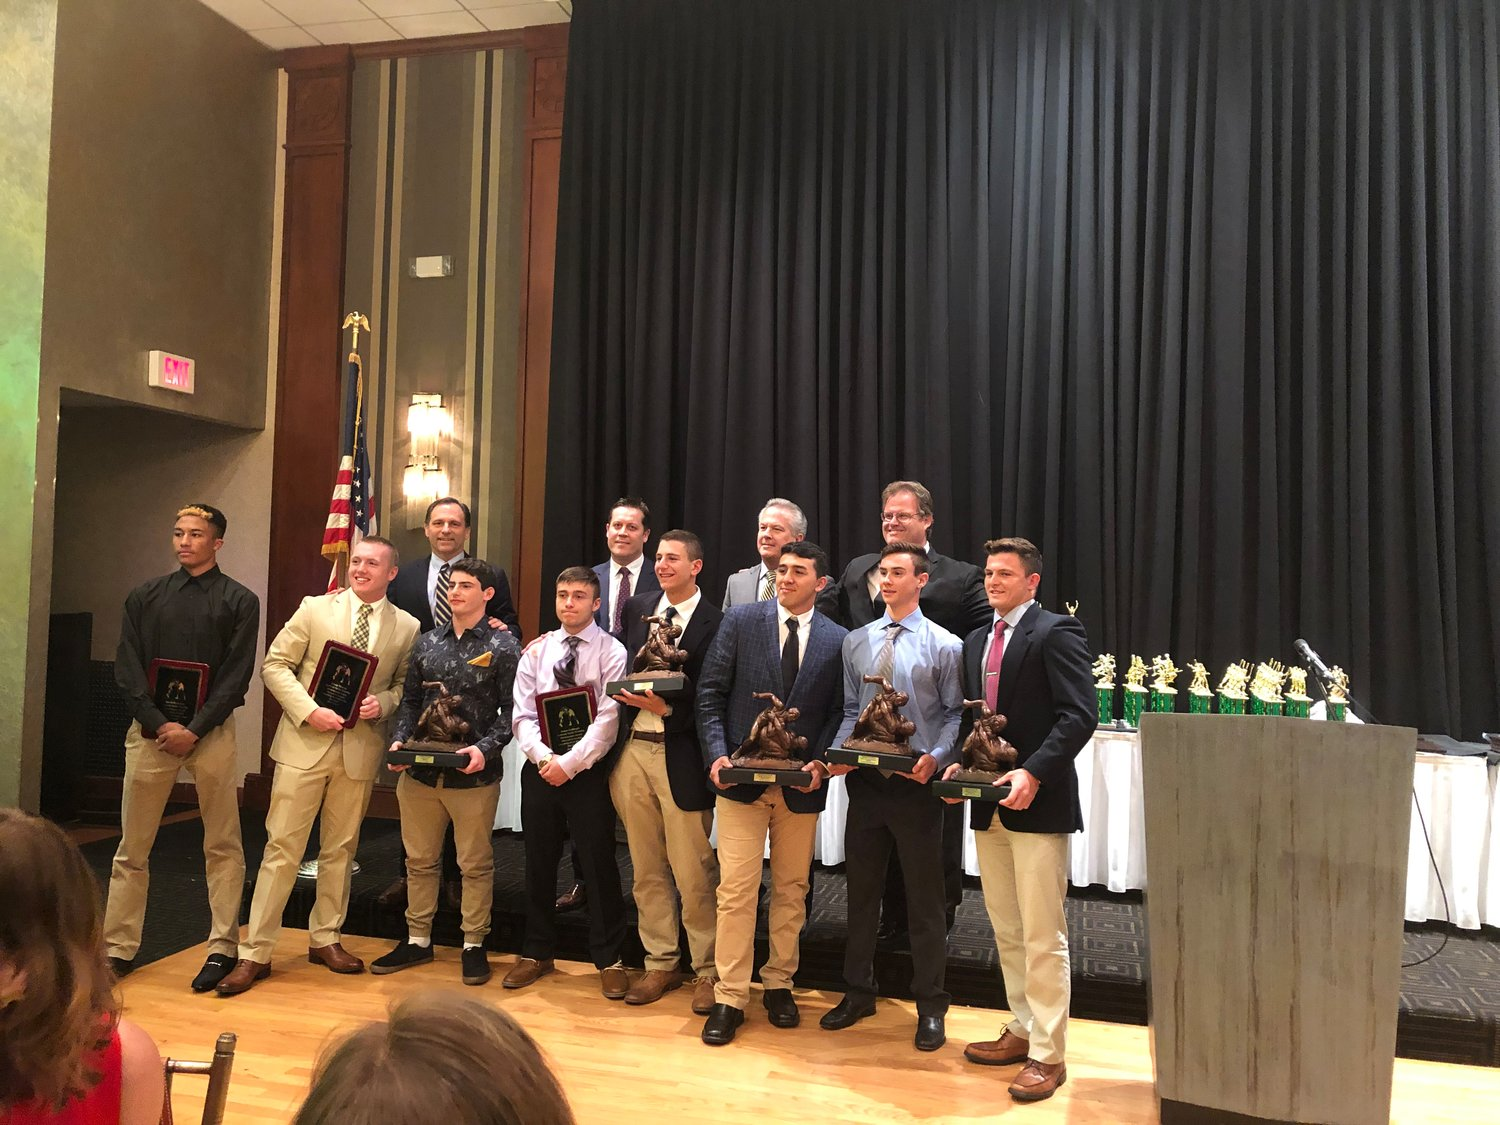 Lynbrook High School varsity wrestlers who were recognized at the annual Becker Brothers Awards ceremony included, from left, David Frederick; Jimmy Murray; Tyler Heaney; James Guillespie; Jessie Candel; Henry Quilca; Justin Weinberger; and John DiBenedetto. Above, the wrestlers with, from left, Hilary Becker, coach Matt Hollenstein, Greg Becker and coach Rich Renz.